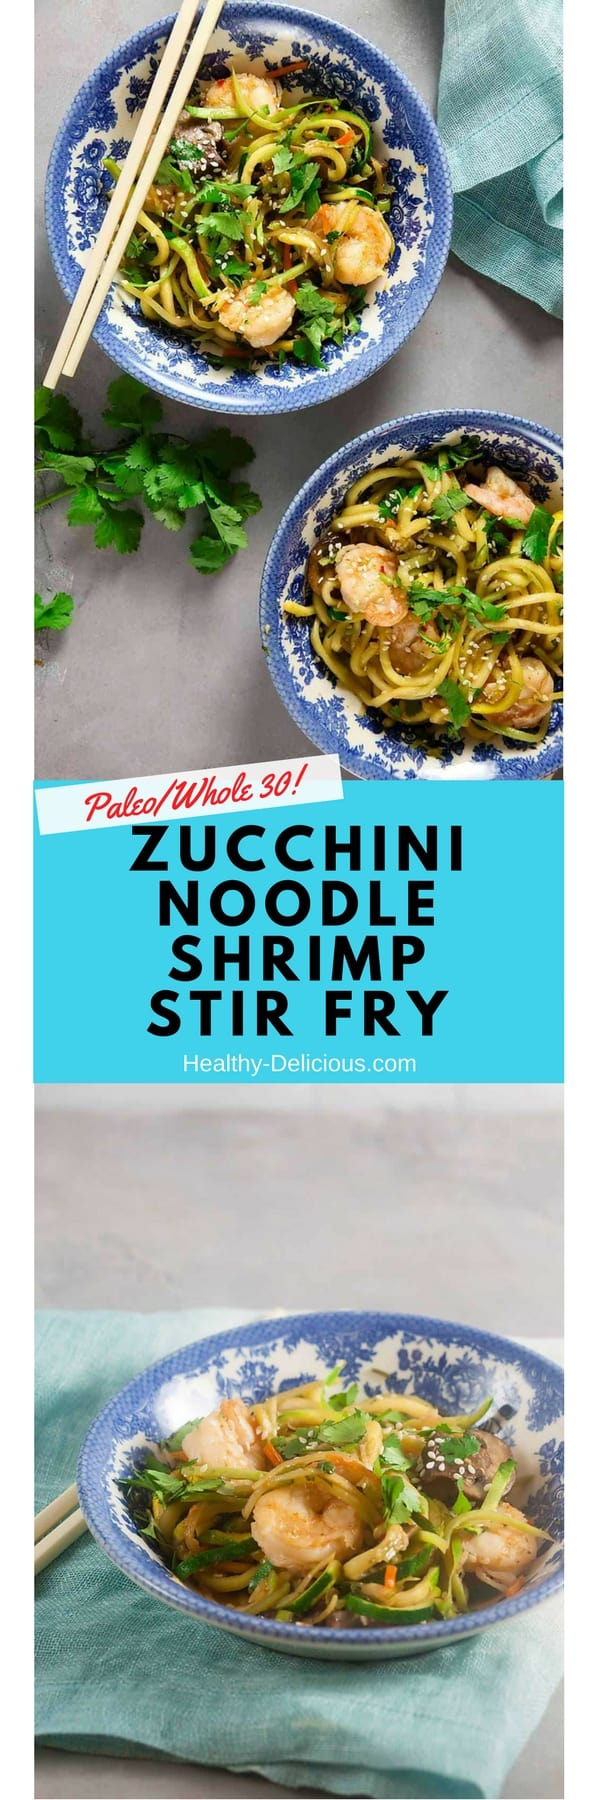 Zucchini Noodle Shrimp Stir Fry (Paleo, Whole 30) 1